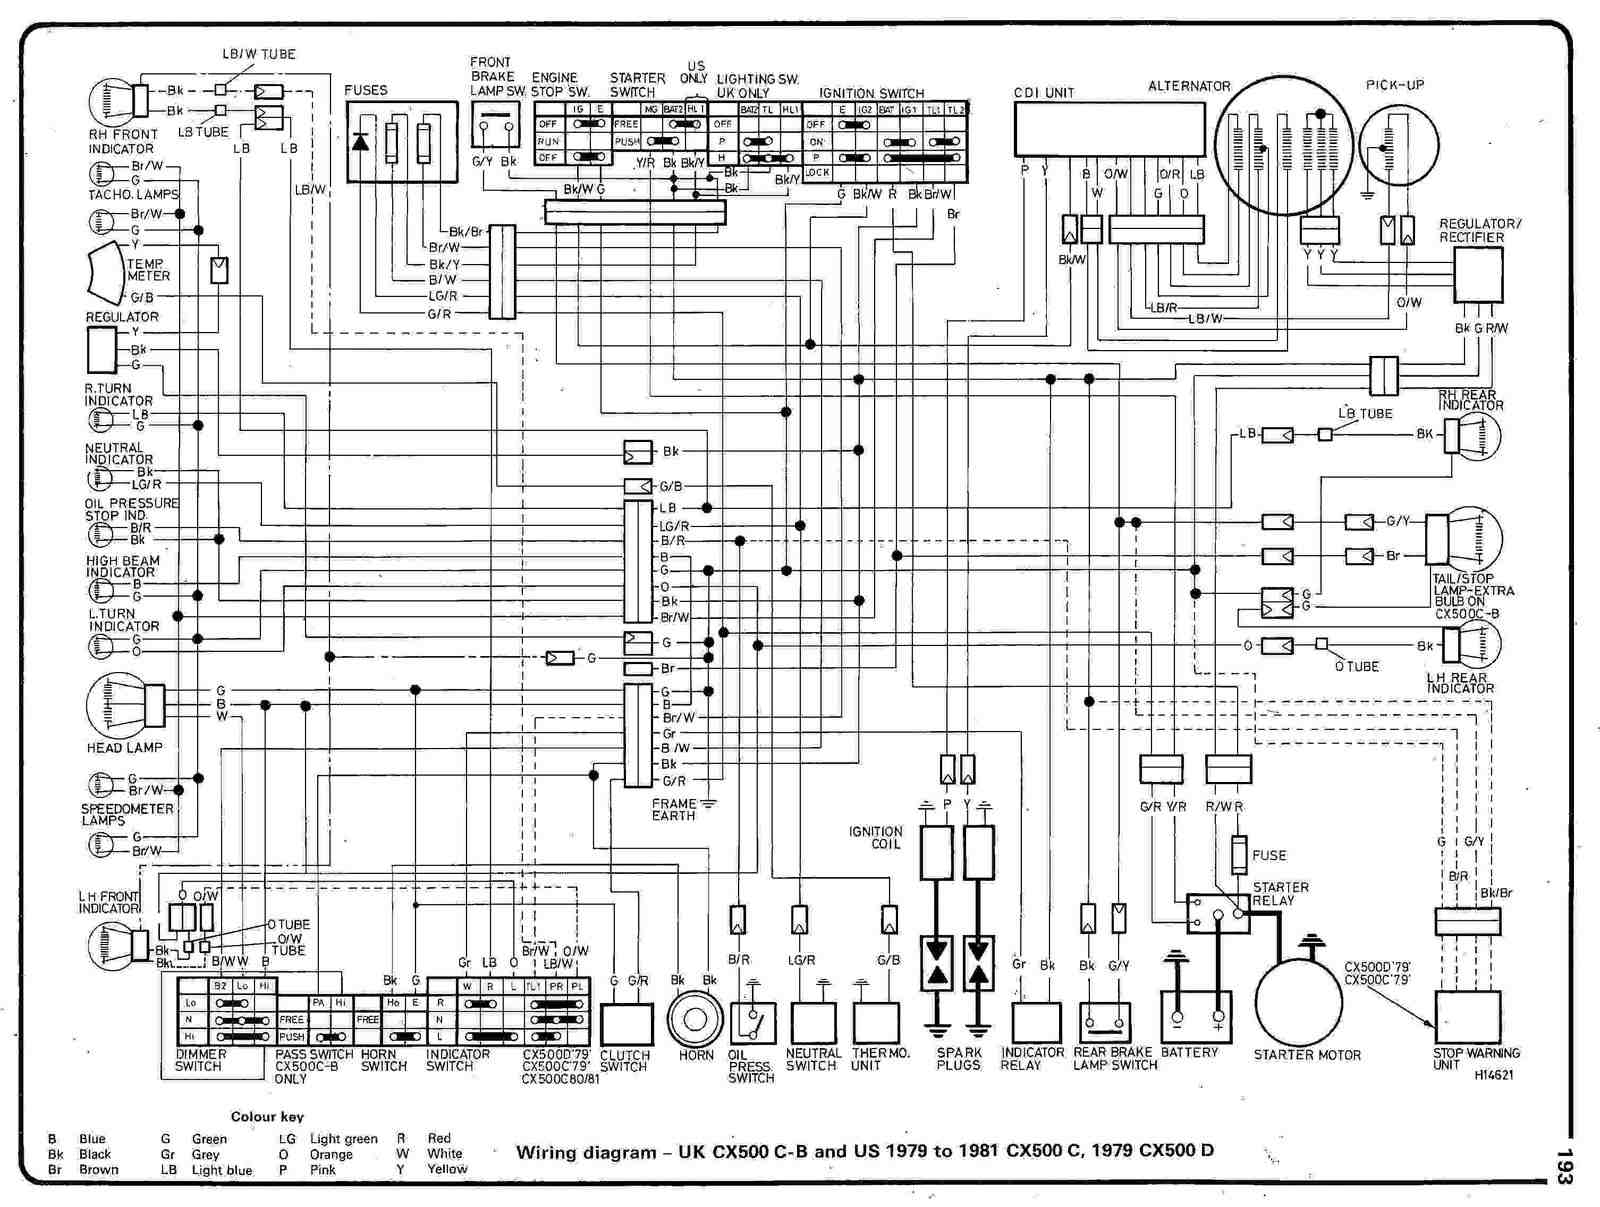 cx500 wiring diagram simple wiring schema cafe racer cx500 wiring diagram cx500 wiring diagram [ 1600 x 1207 Pixel ]